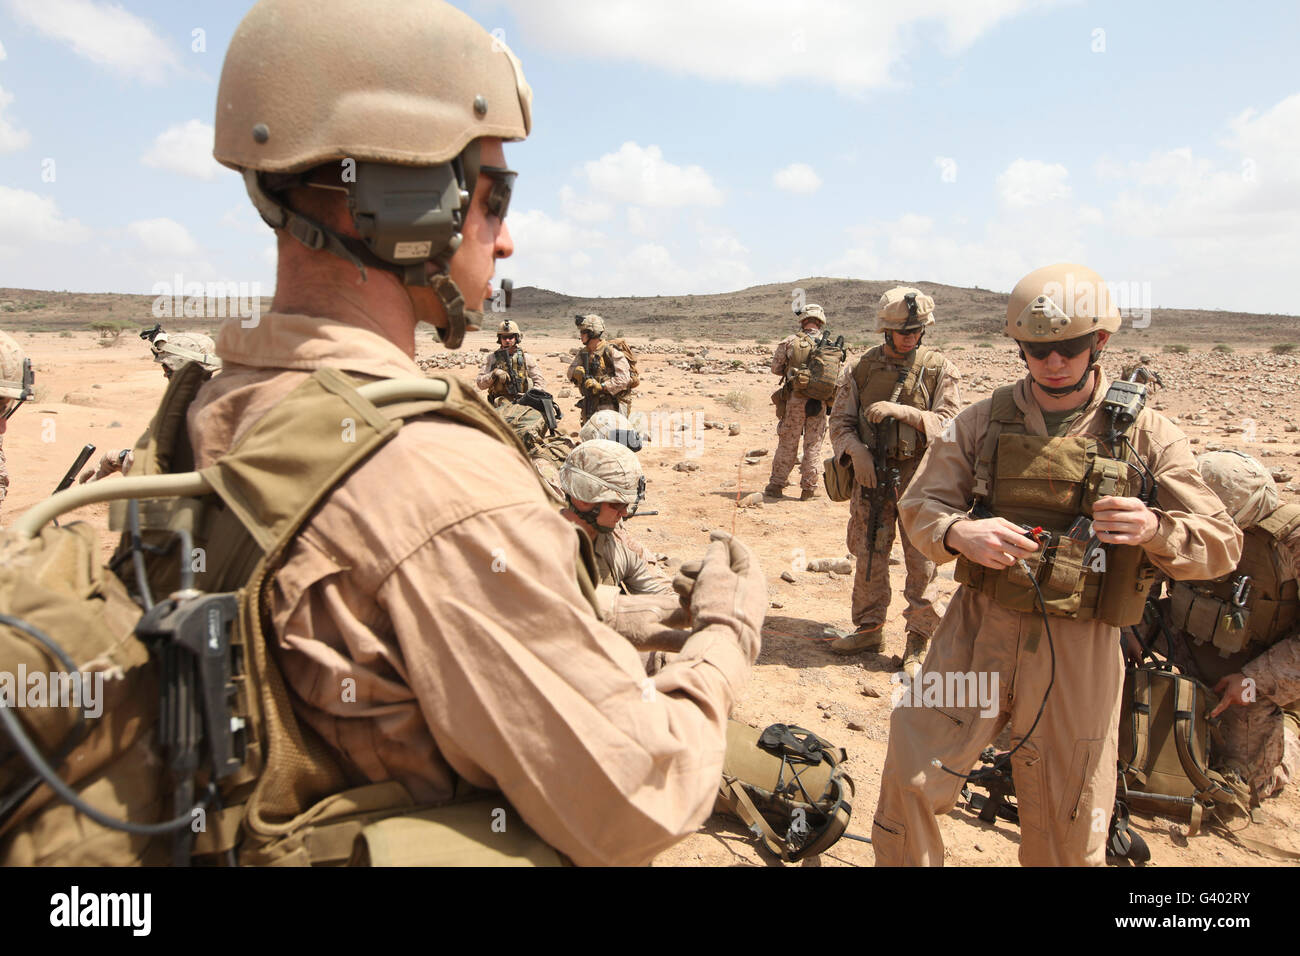 U.S. Marines assemble a field expedient satellite communication antenna. - Stock Image